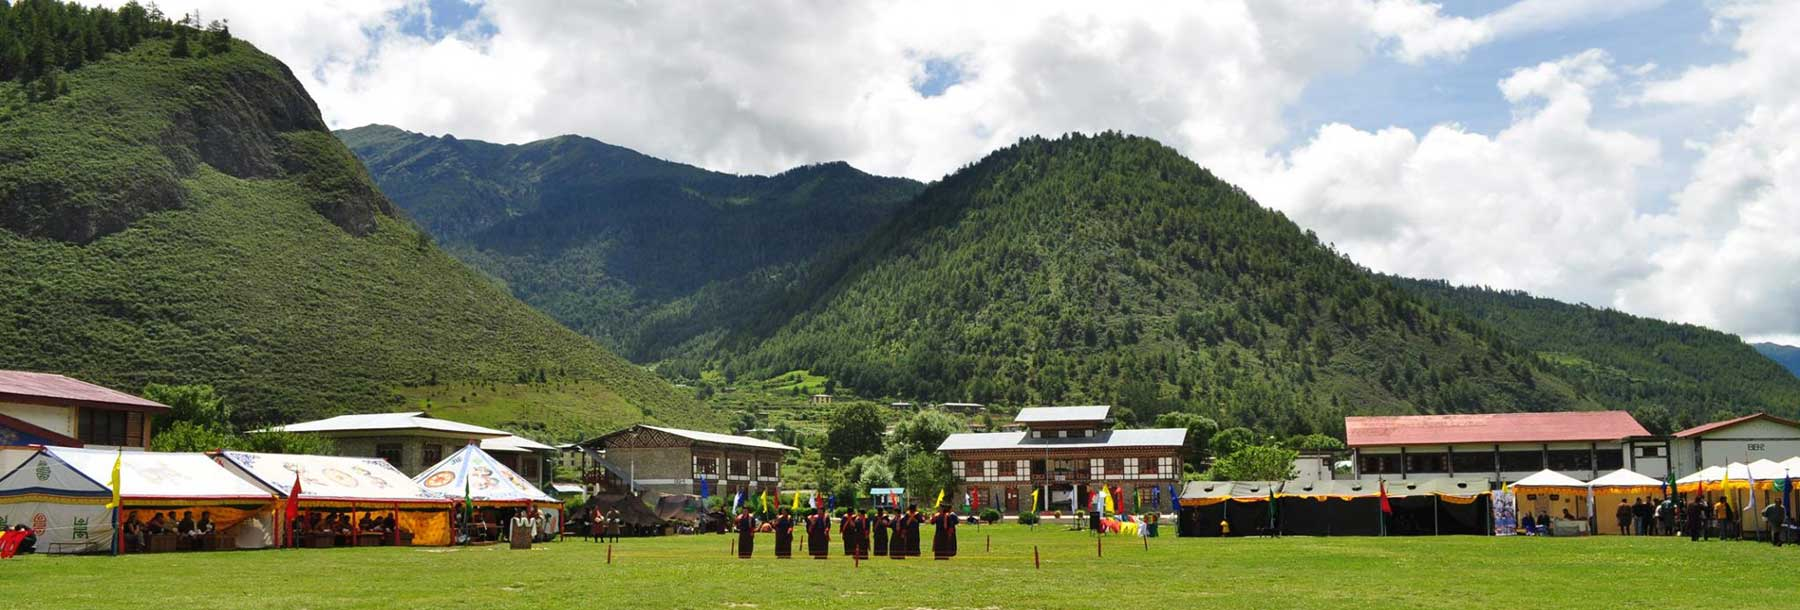 Haa Summer Festival Ground, Bhutan.